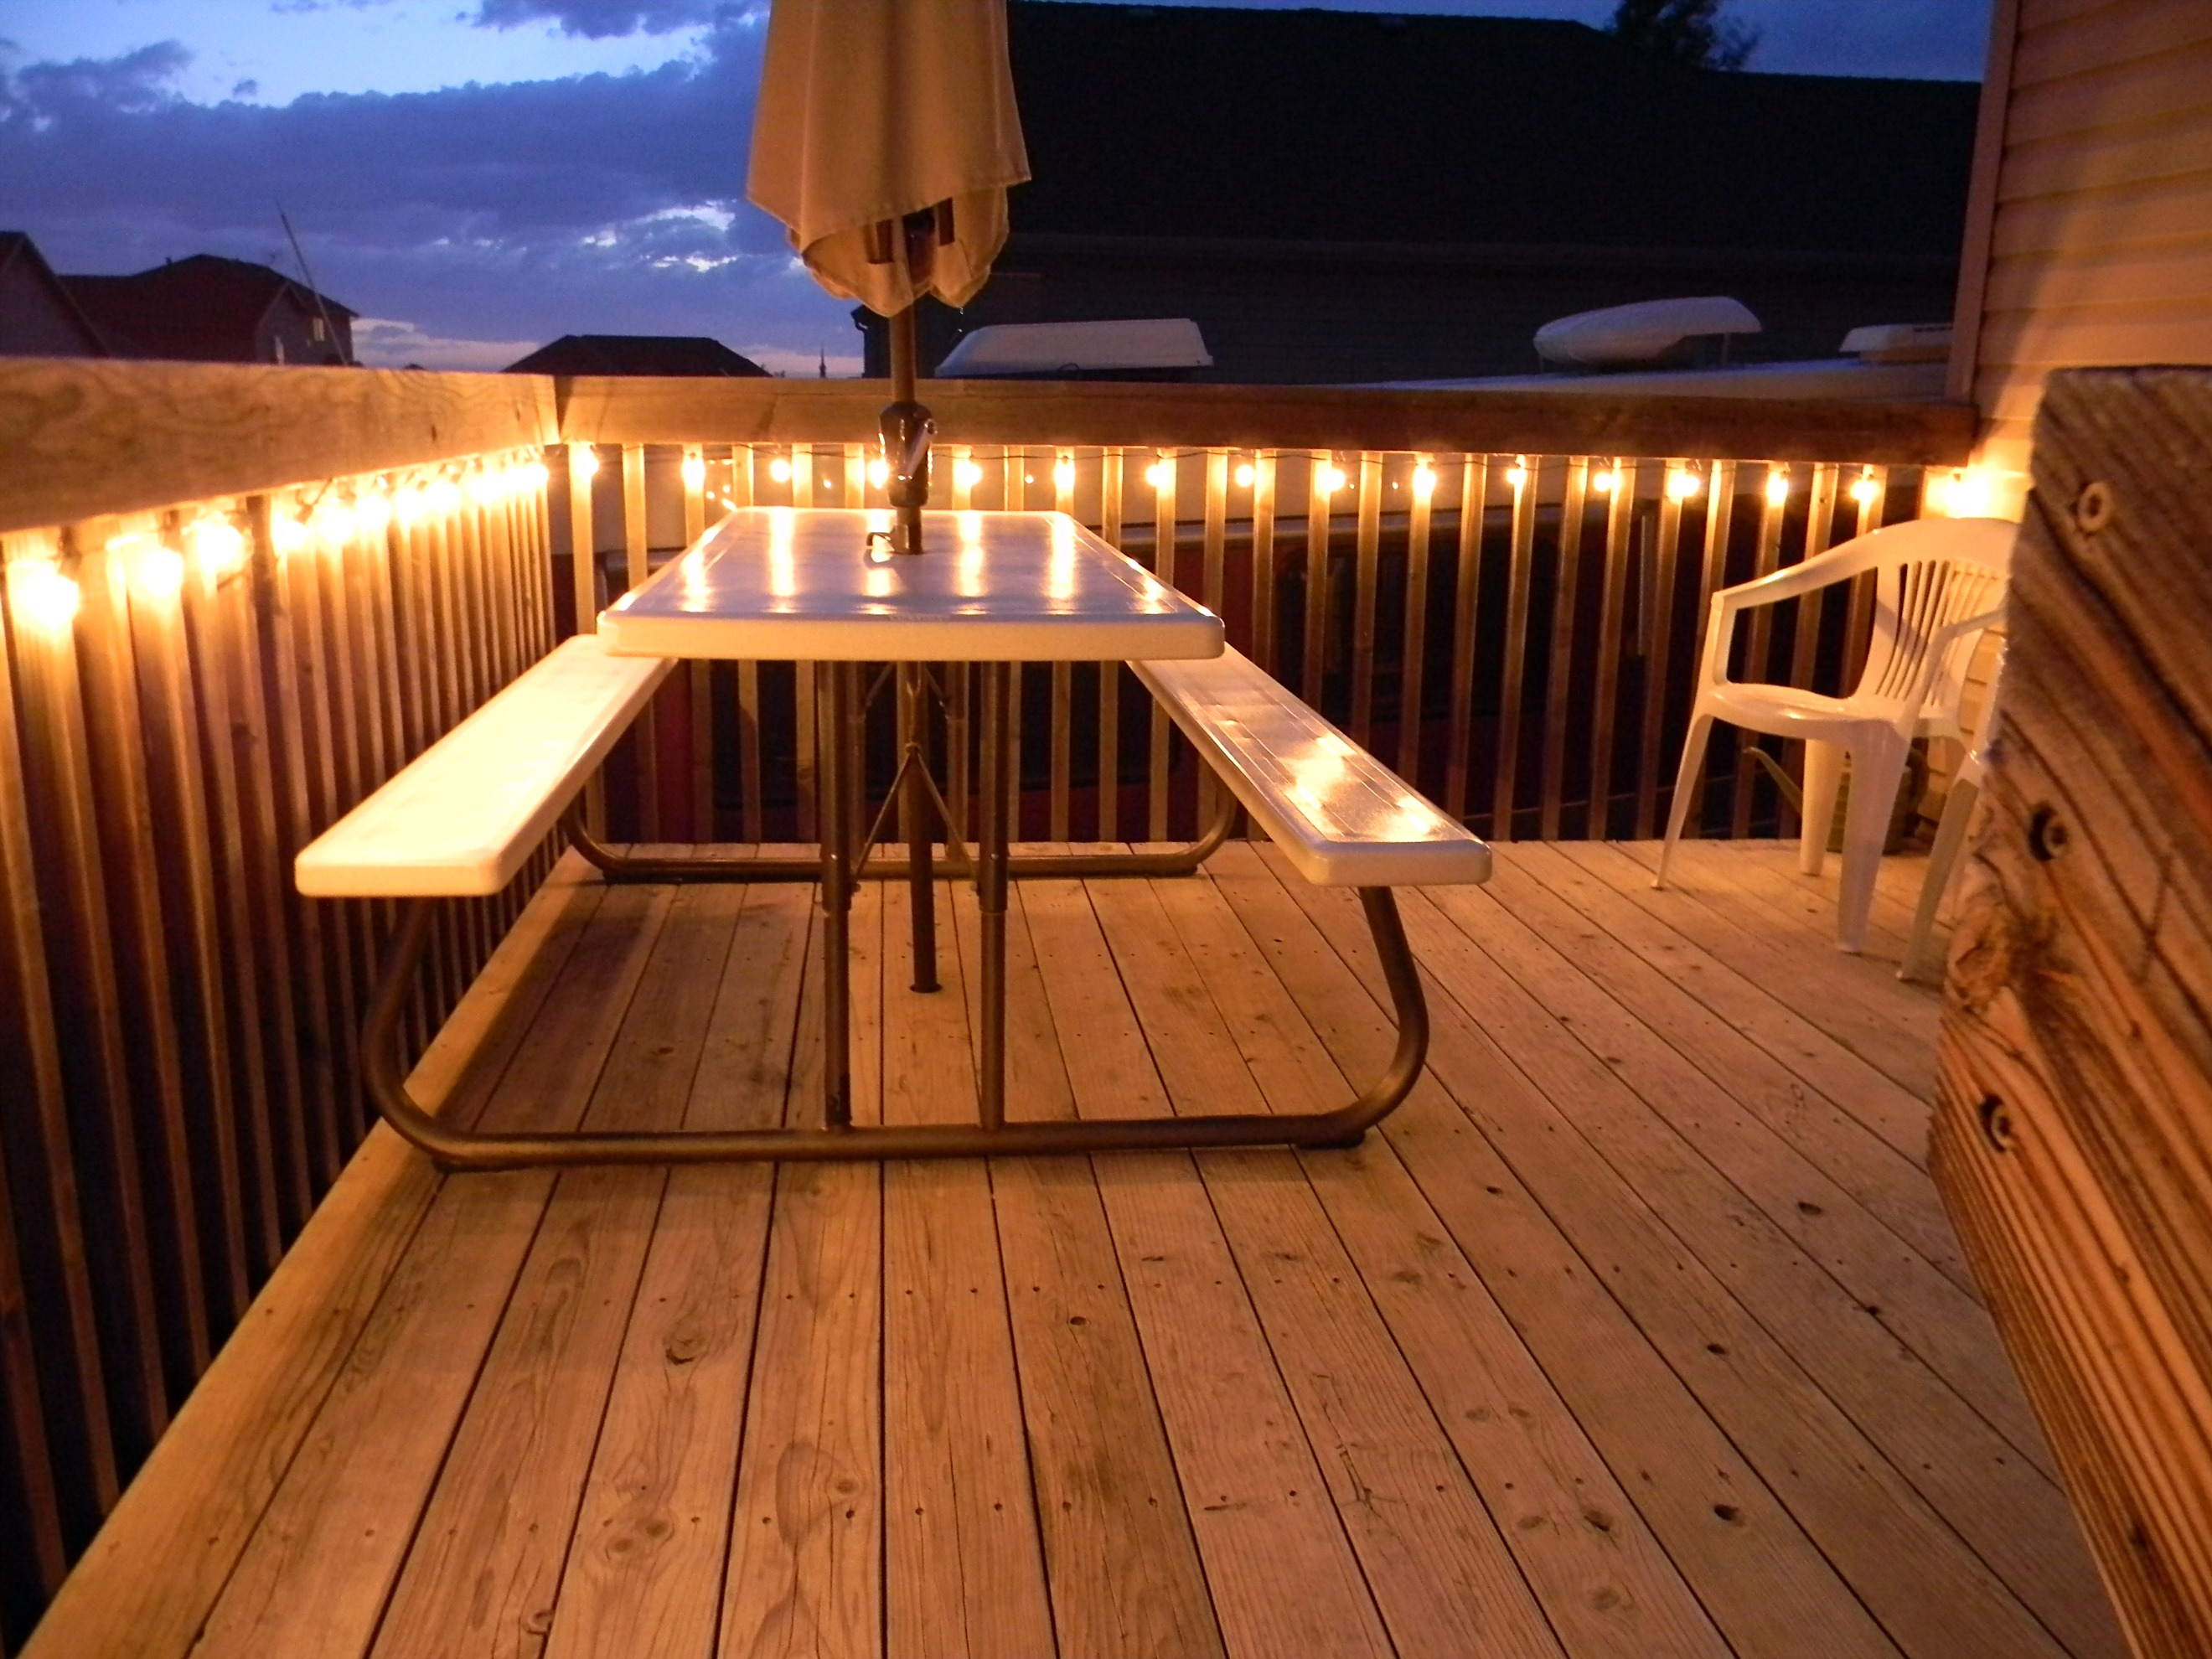 String Lights On Deck Railing : Light Up the Night - Deck Lighting Ideas - Cedar Works